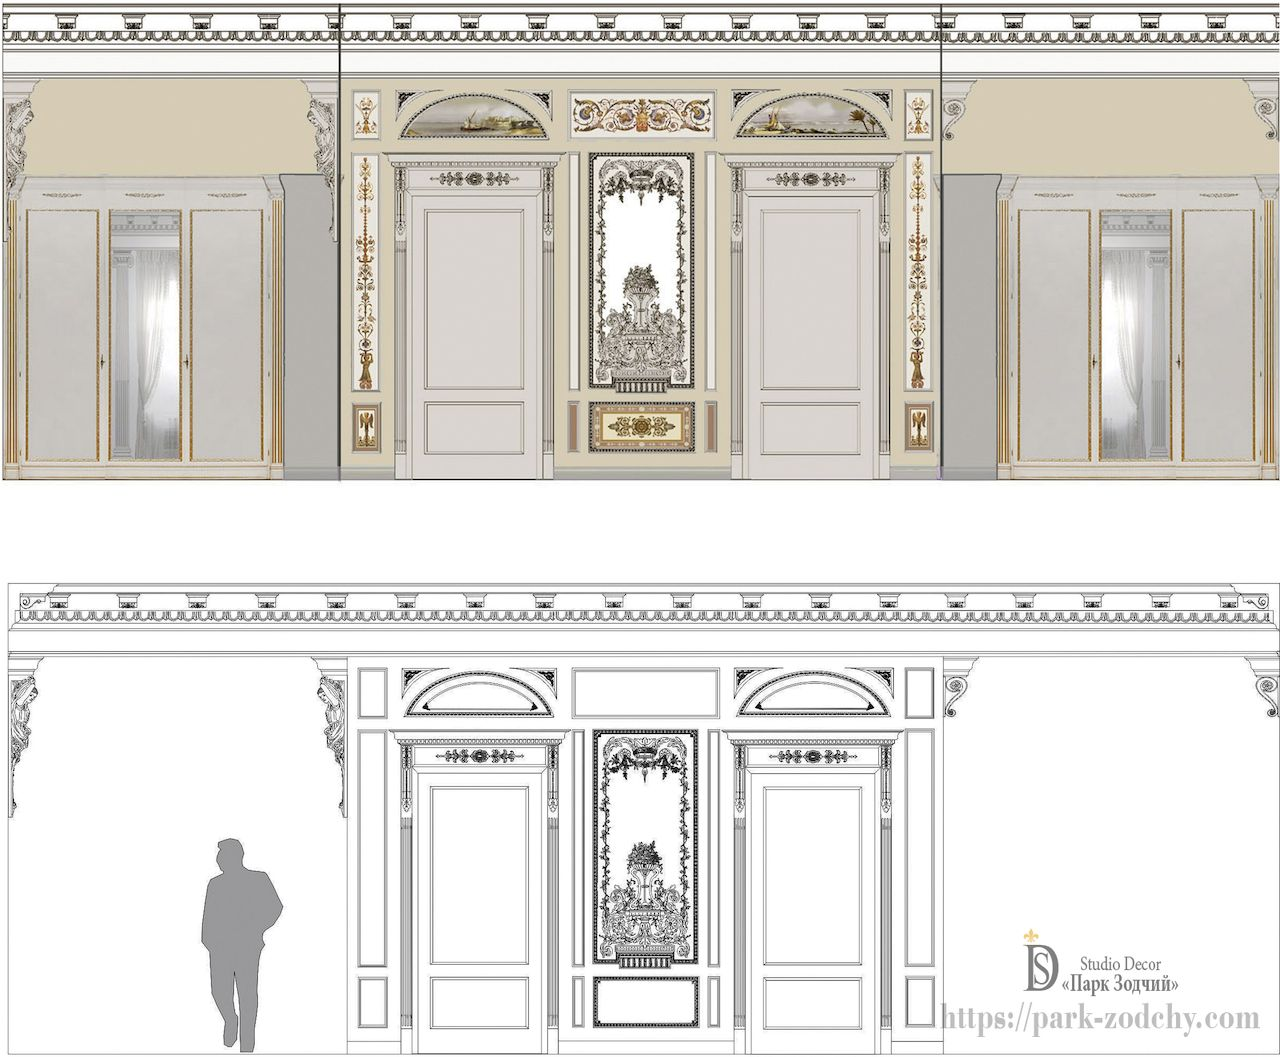 Project stages: sketch and visualization of alfrey painting in the interior